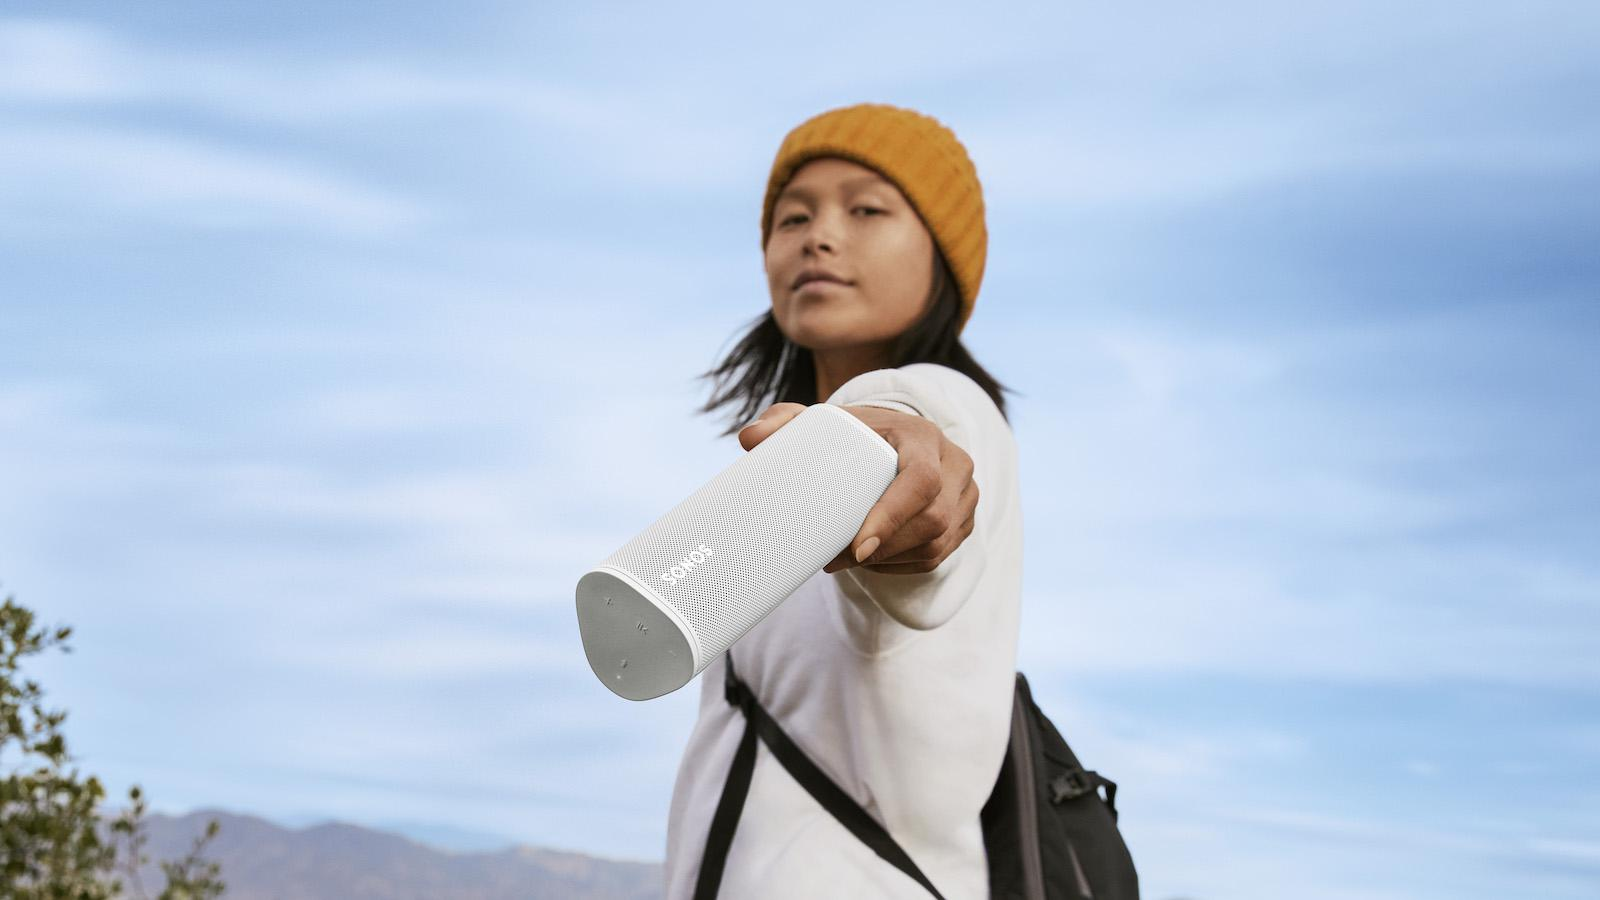 Woman Holding White Sonos Roam Portable Wireless Speaker